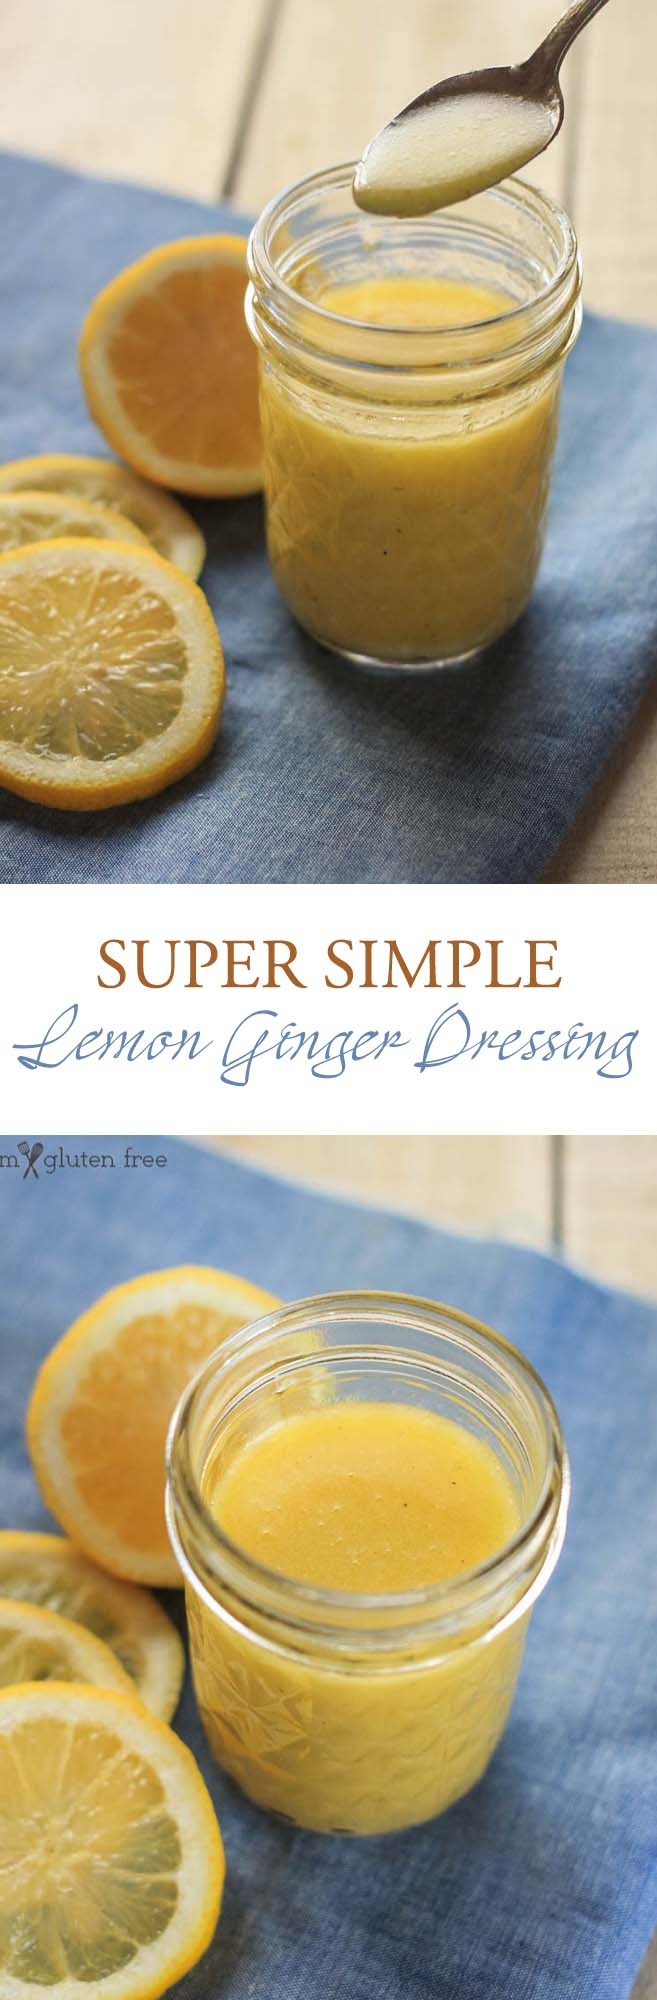 Gluten free and super simple lemon ginger salad dressing recipe!